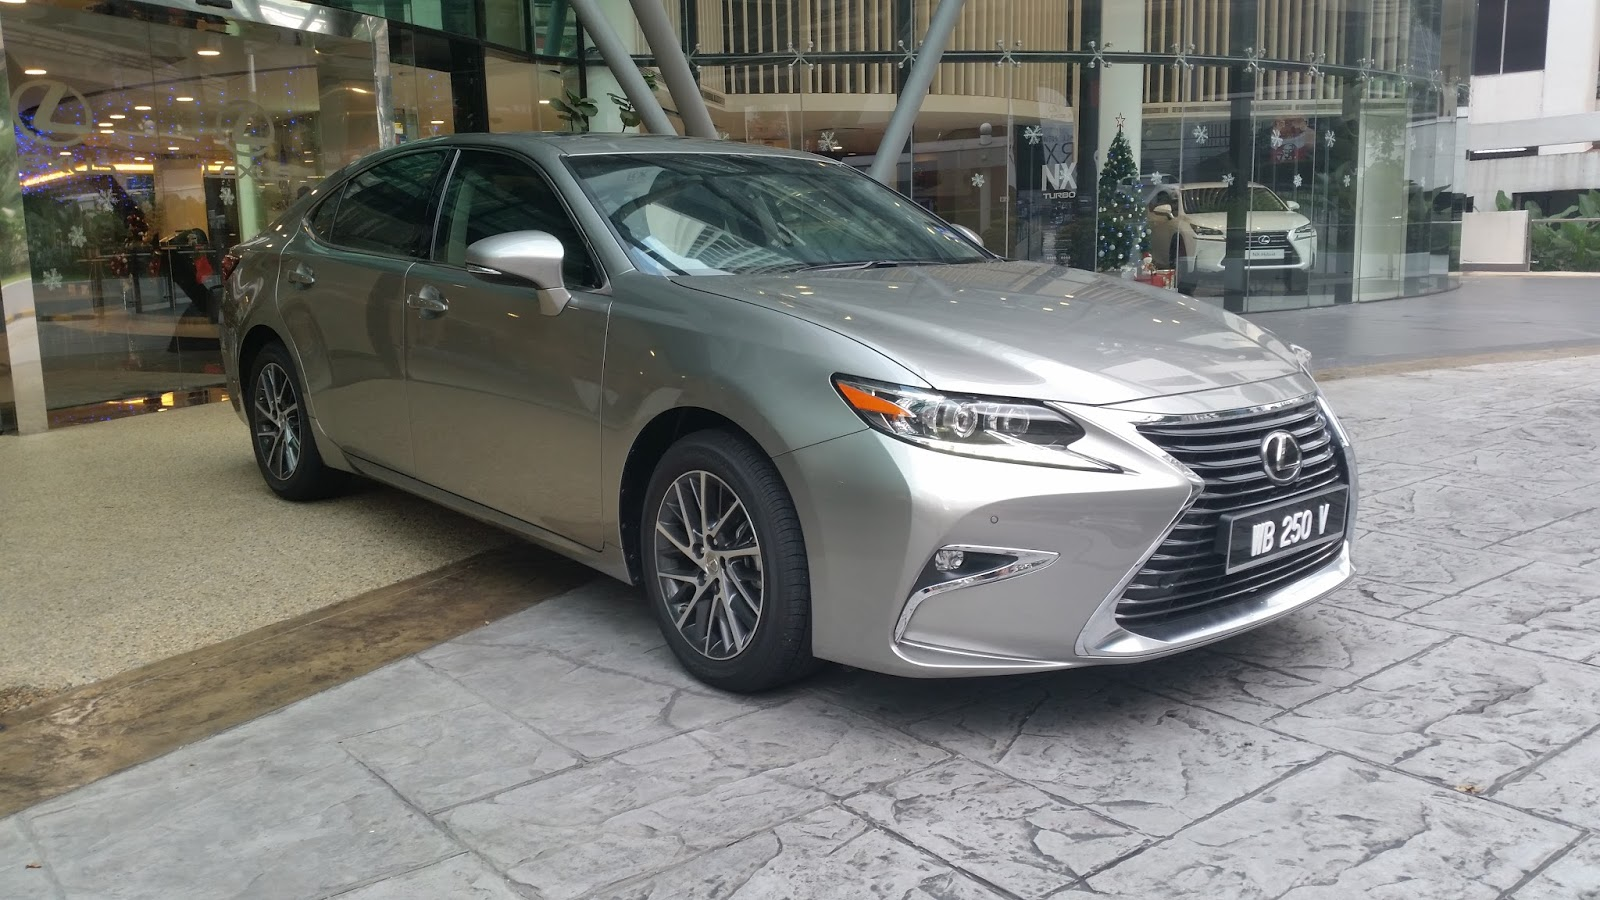 So Let S Take The Lexus Es 250 For A Spin If Got Their Calculations Right This Car Should Speak To Me Like Mother Cooing At Her Newborn